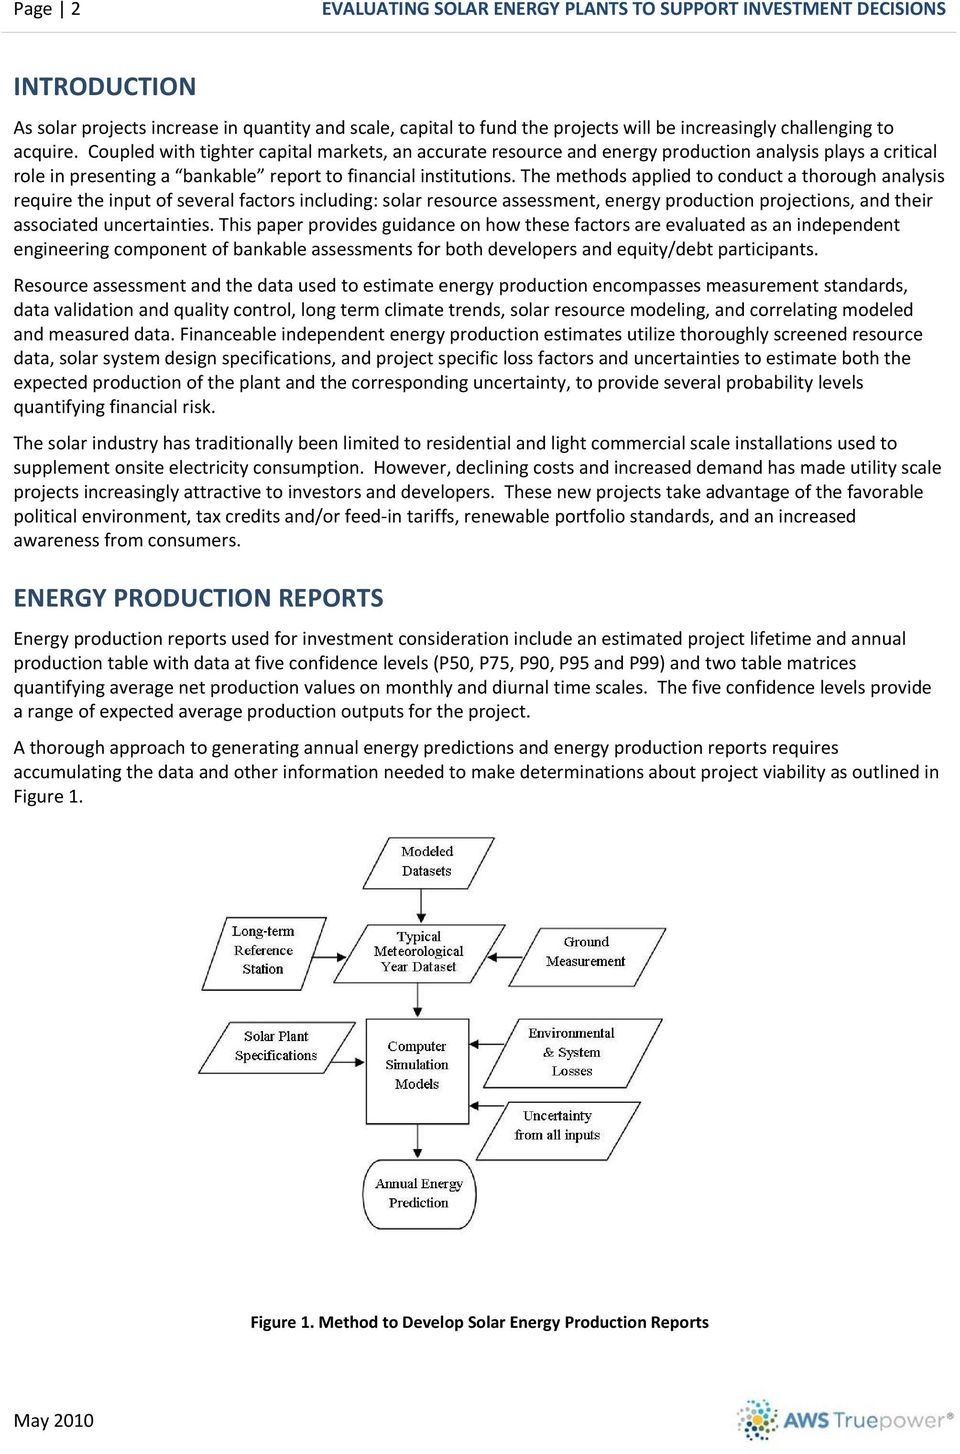 The methods applied to conduct a thorough analysis require the input of several factors including: solar resource assessment, energy production projections, and their associated uncertainties.